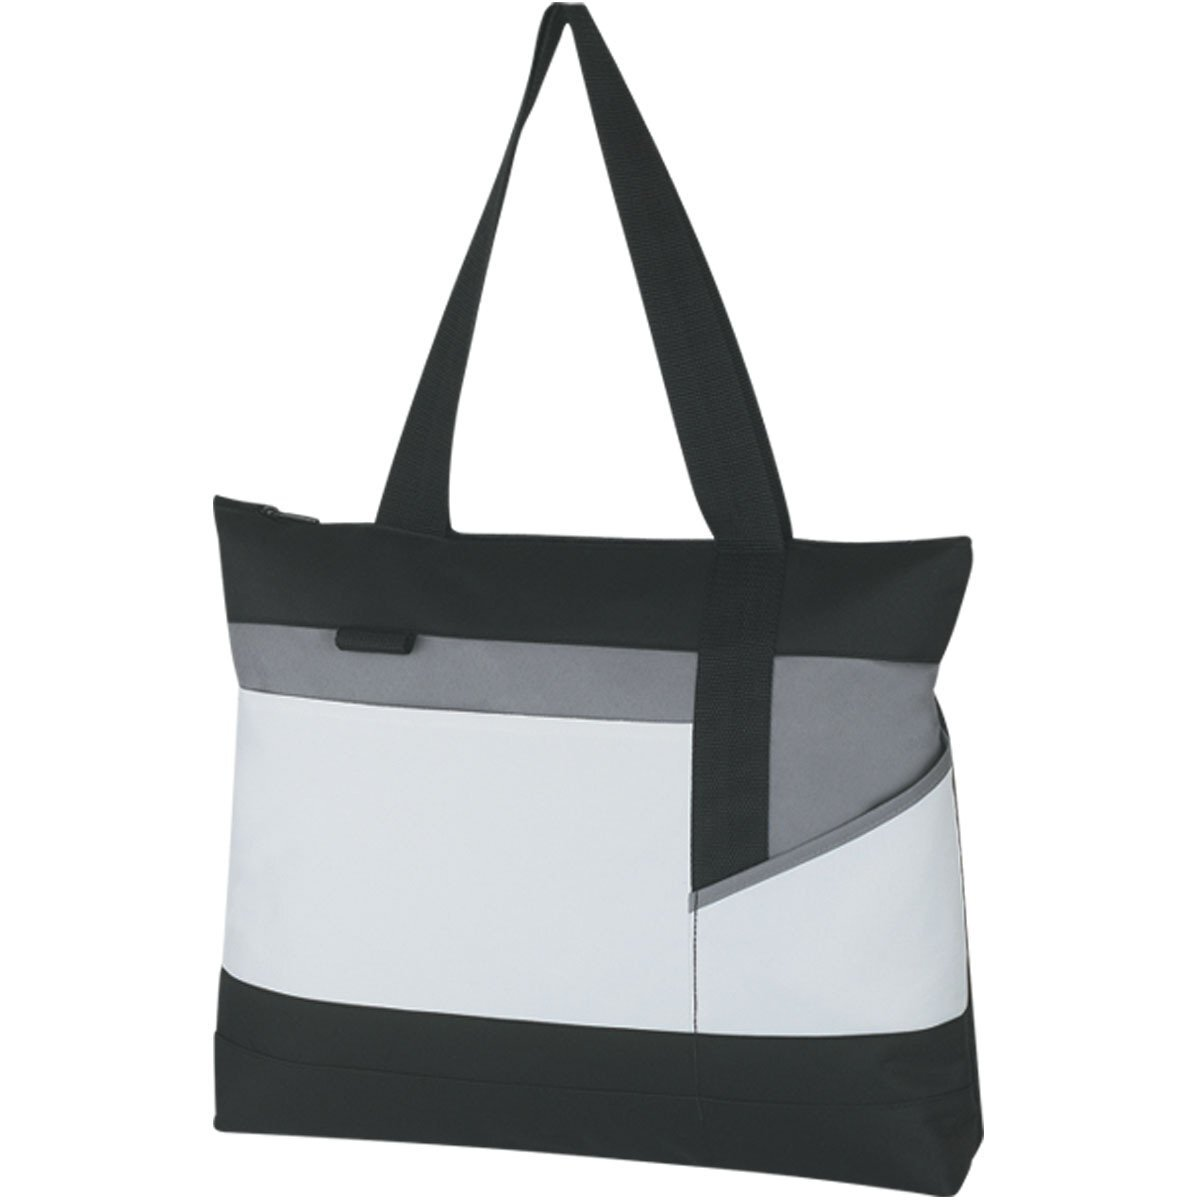 Cameron Zippered Polycanvas Tote - Free Set Up Charges!